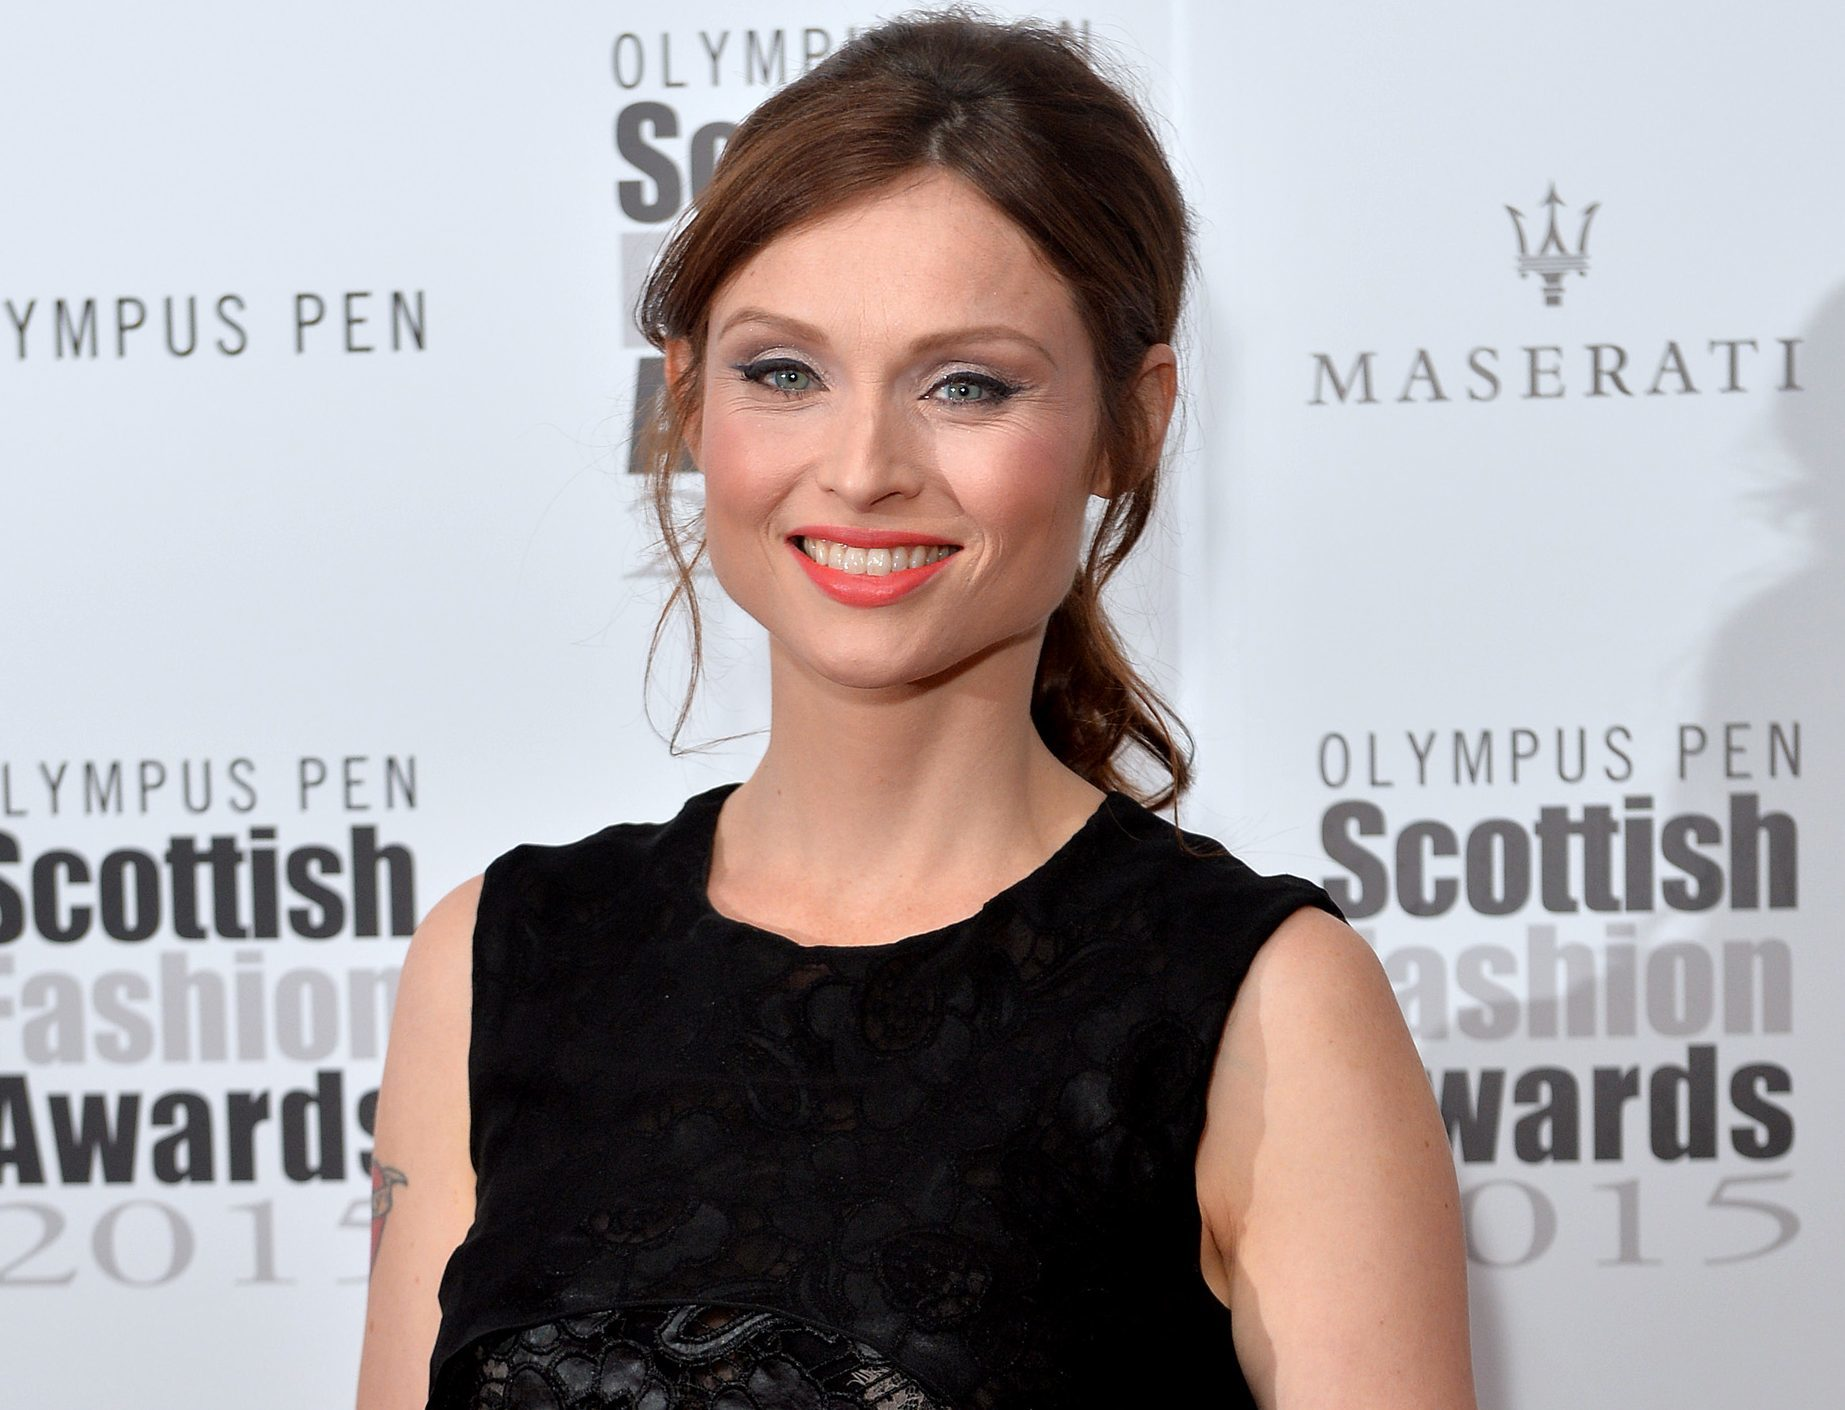 Sophie Ellis-Bextor (Photo by Anthony Harvey/Getty Images)